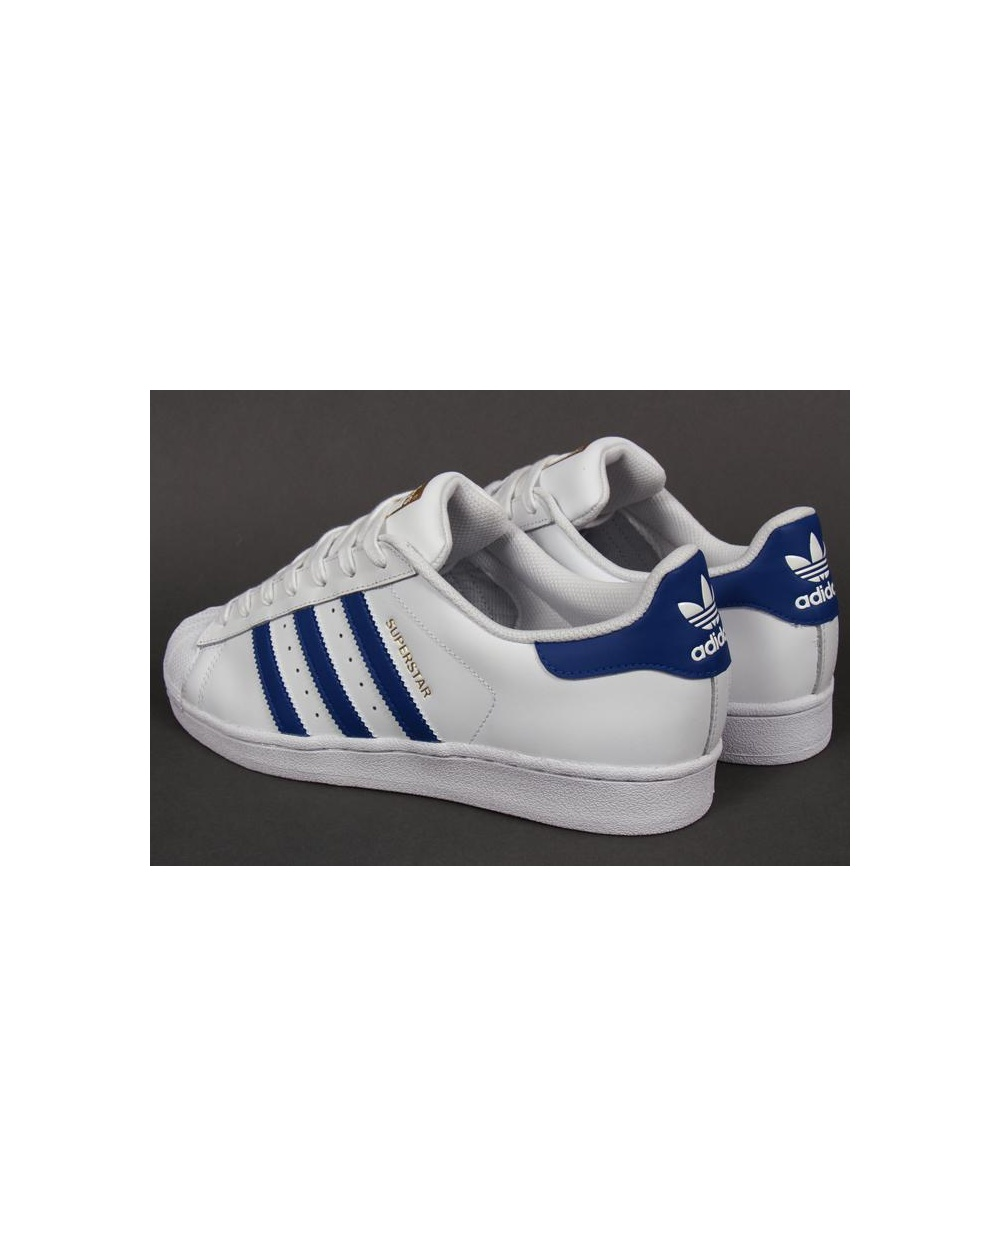 adidas Superstar Foundation Mens B27136 White Shell Toe Originals